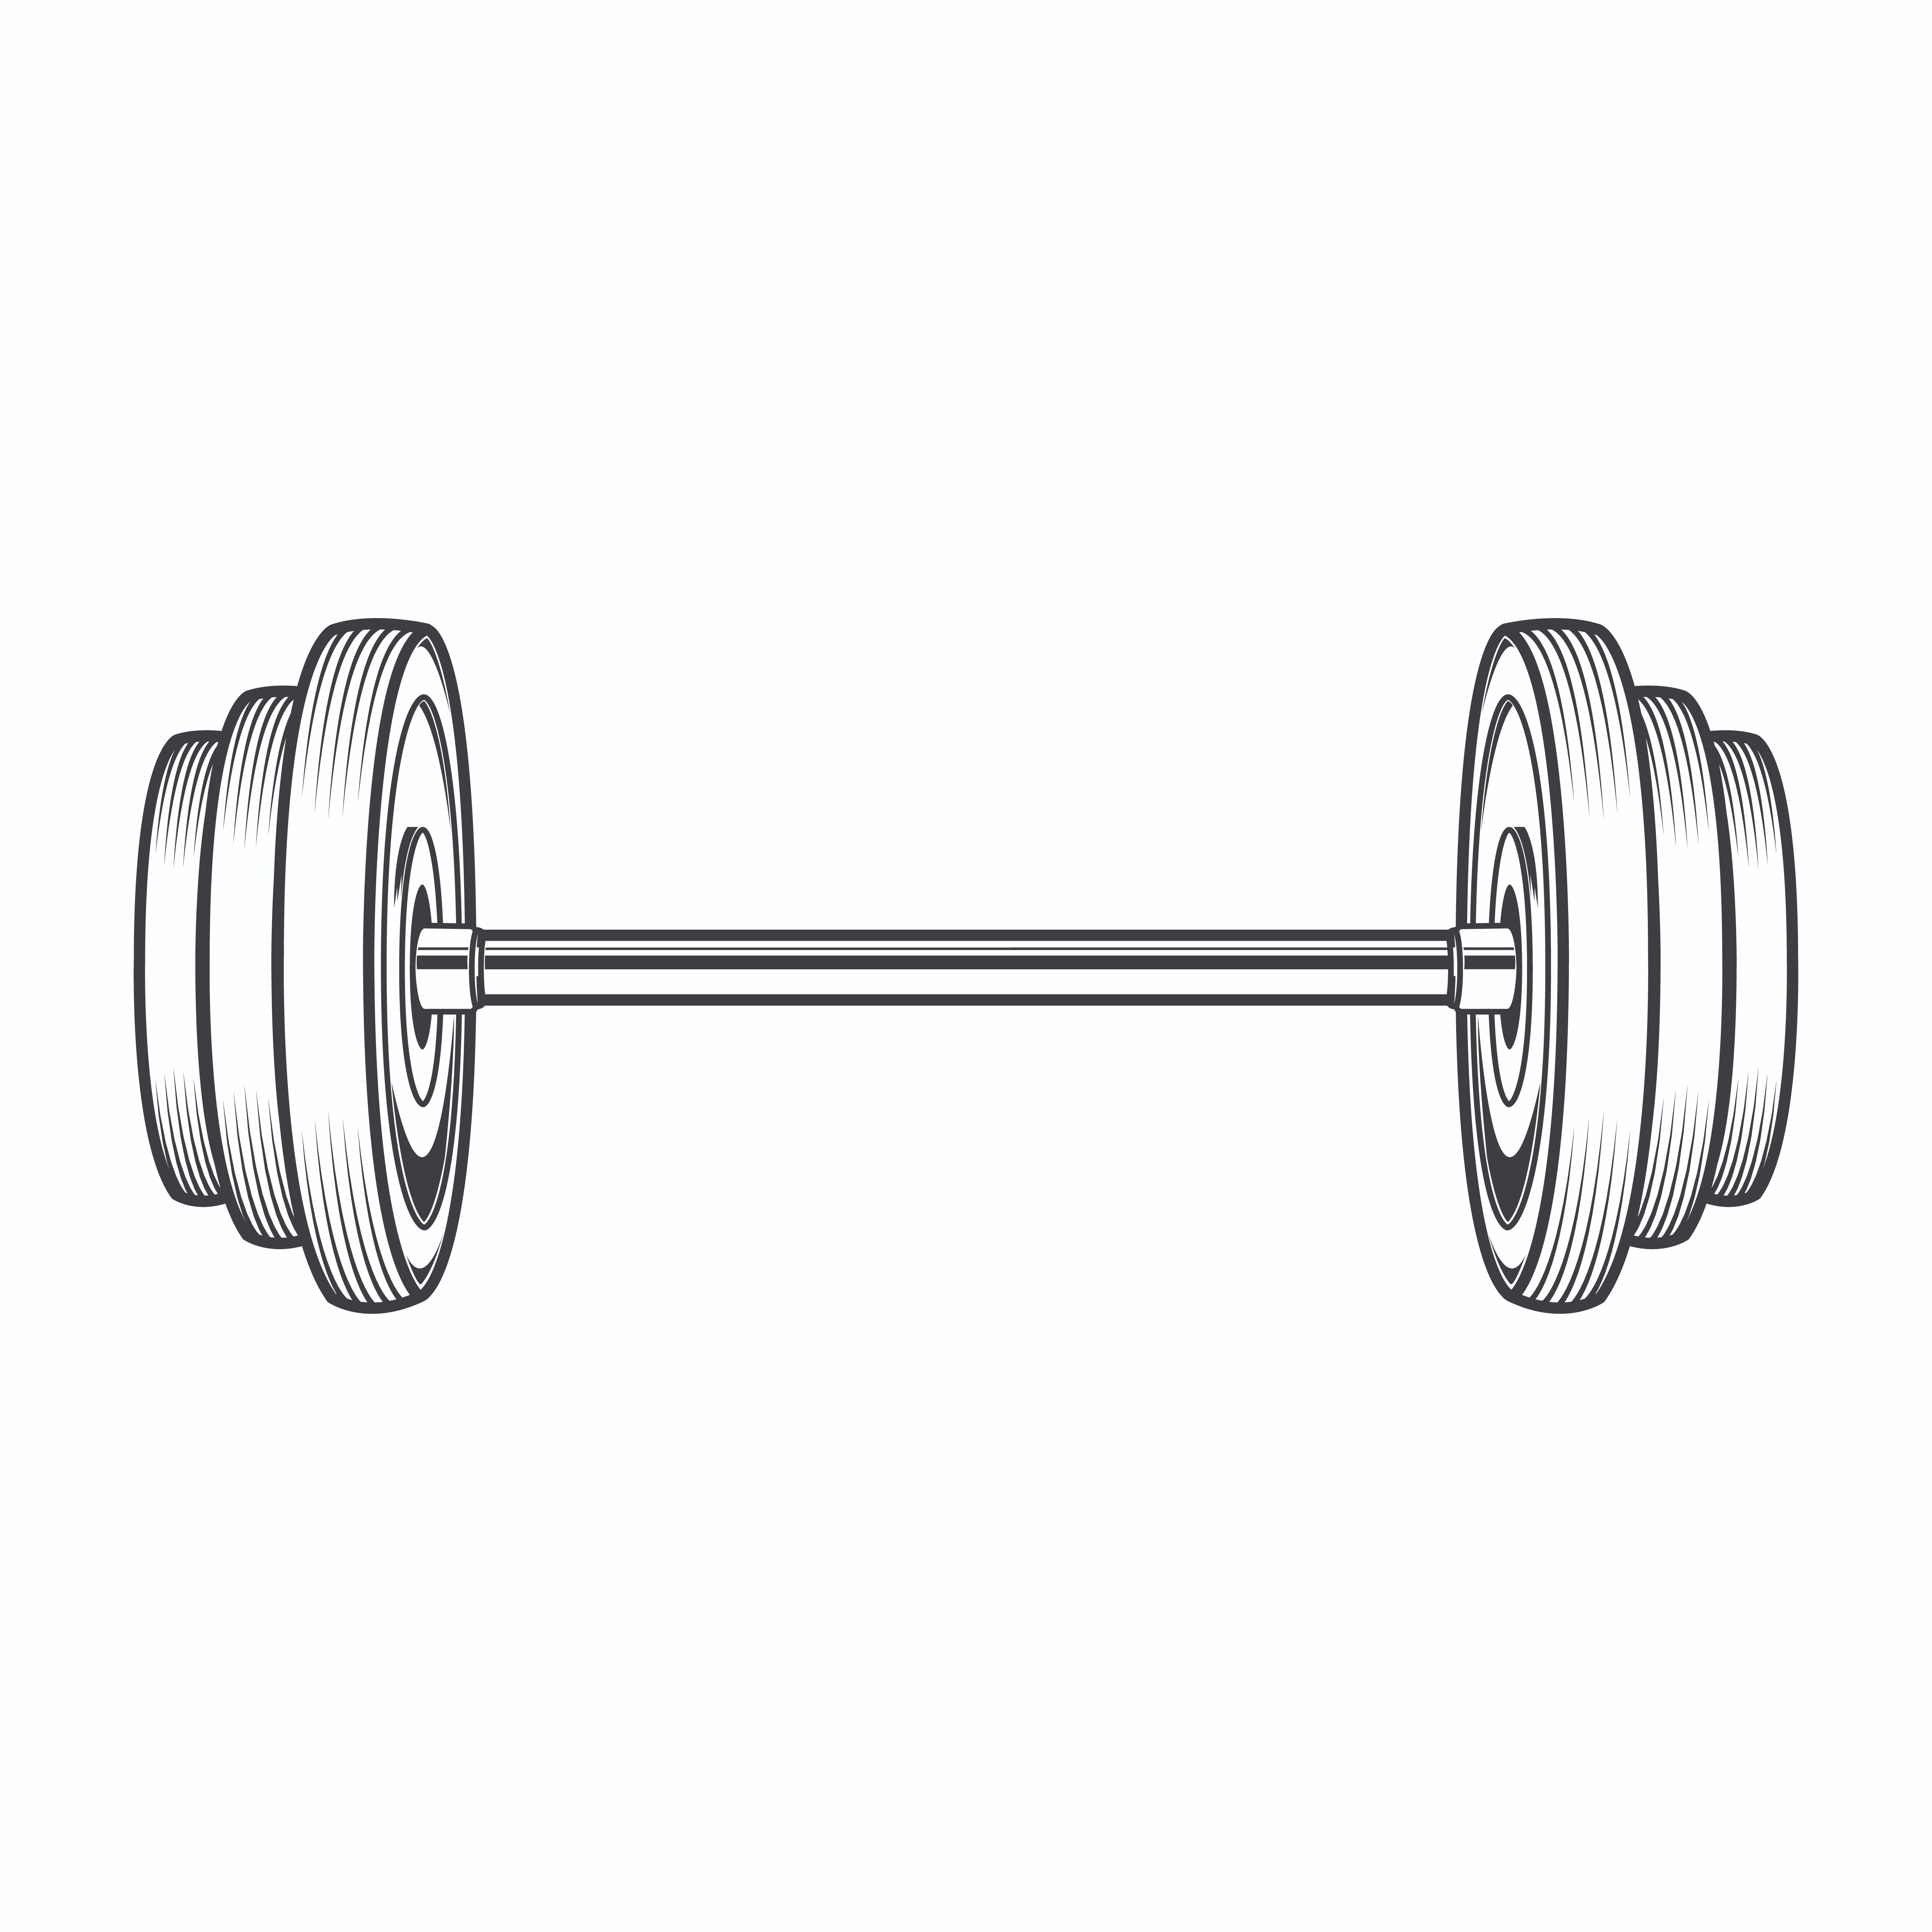 White barbell clipart png download Bent Barbell Clipart   Free download best Bent Barbell ... png download